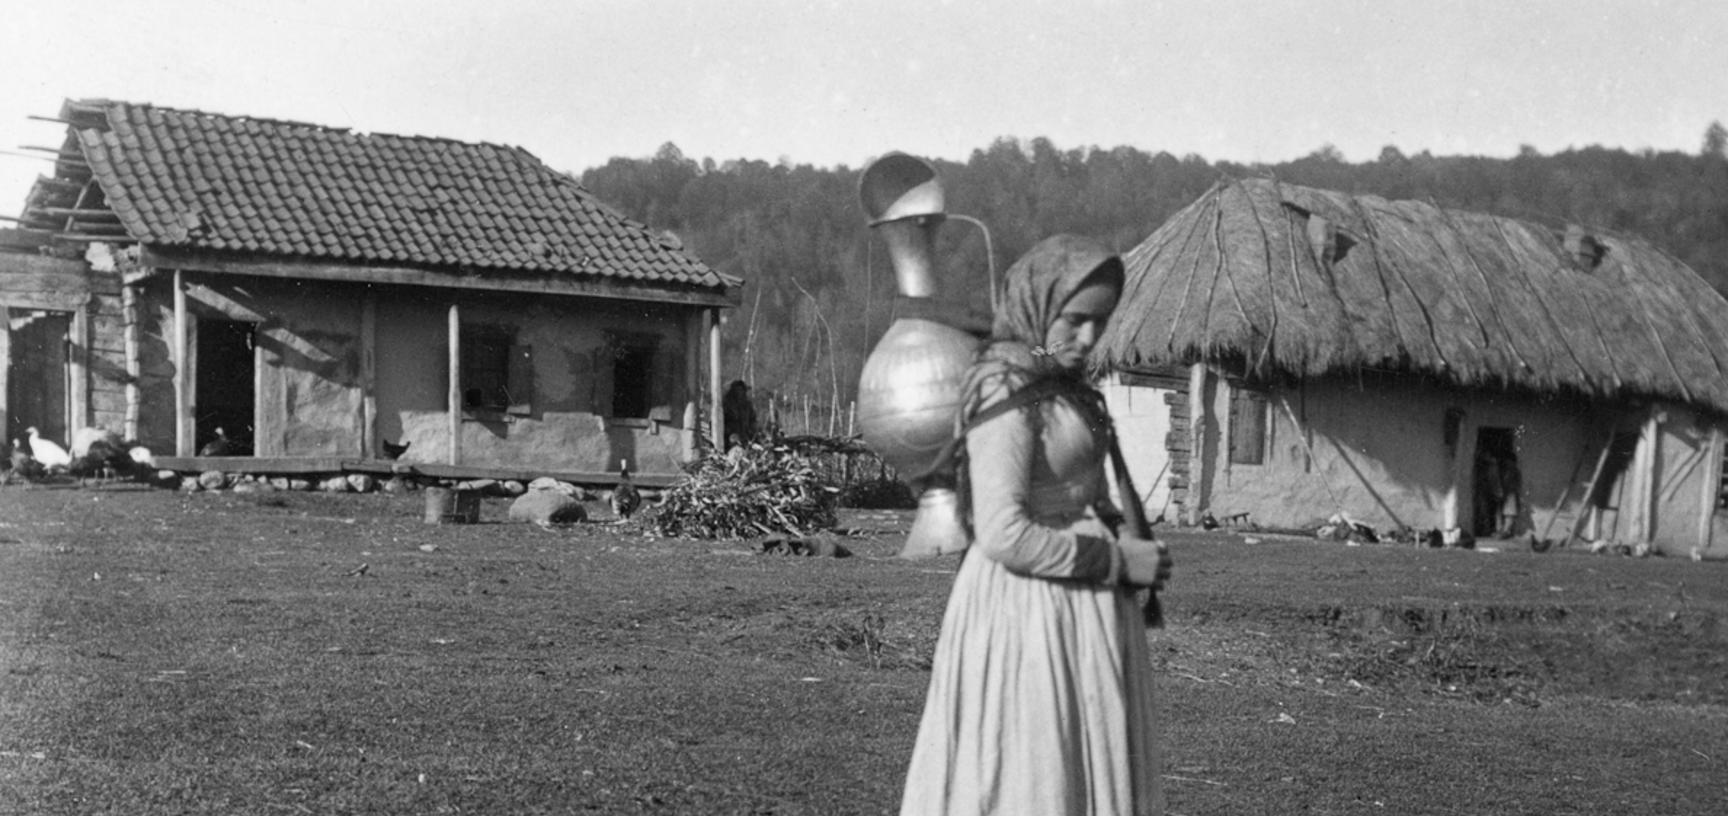 The niece of Hadji Maali, an Ingush leader, carrying a water jar. Photograph by John Baddeley. Muzhichi, Republic of Ingushetia, Russia. 8 October 1901.